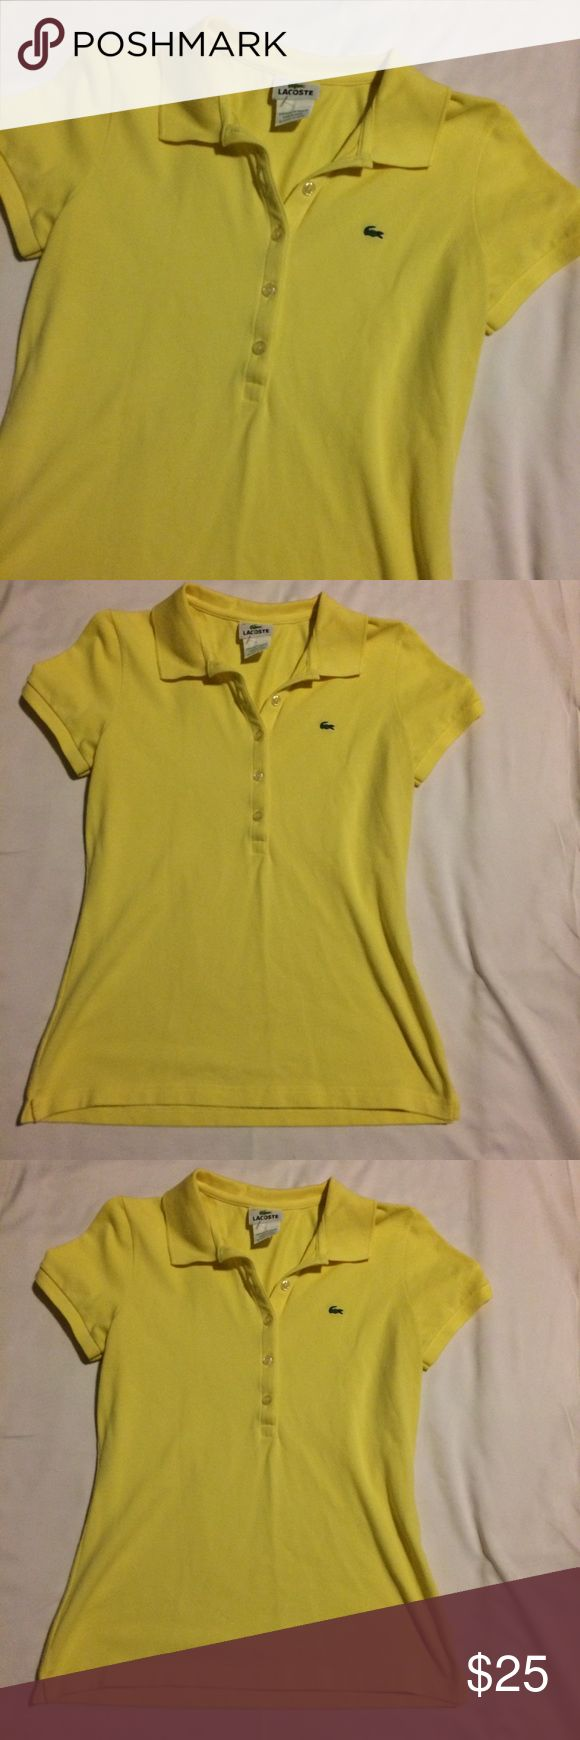 Lacoste Women's Top Sz 40 Preowned Great Condition Women's Top Lacoste Tops